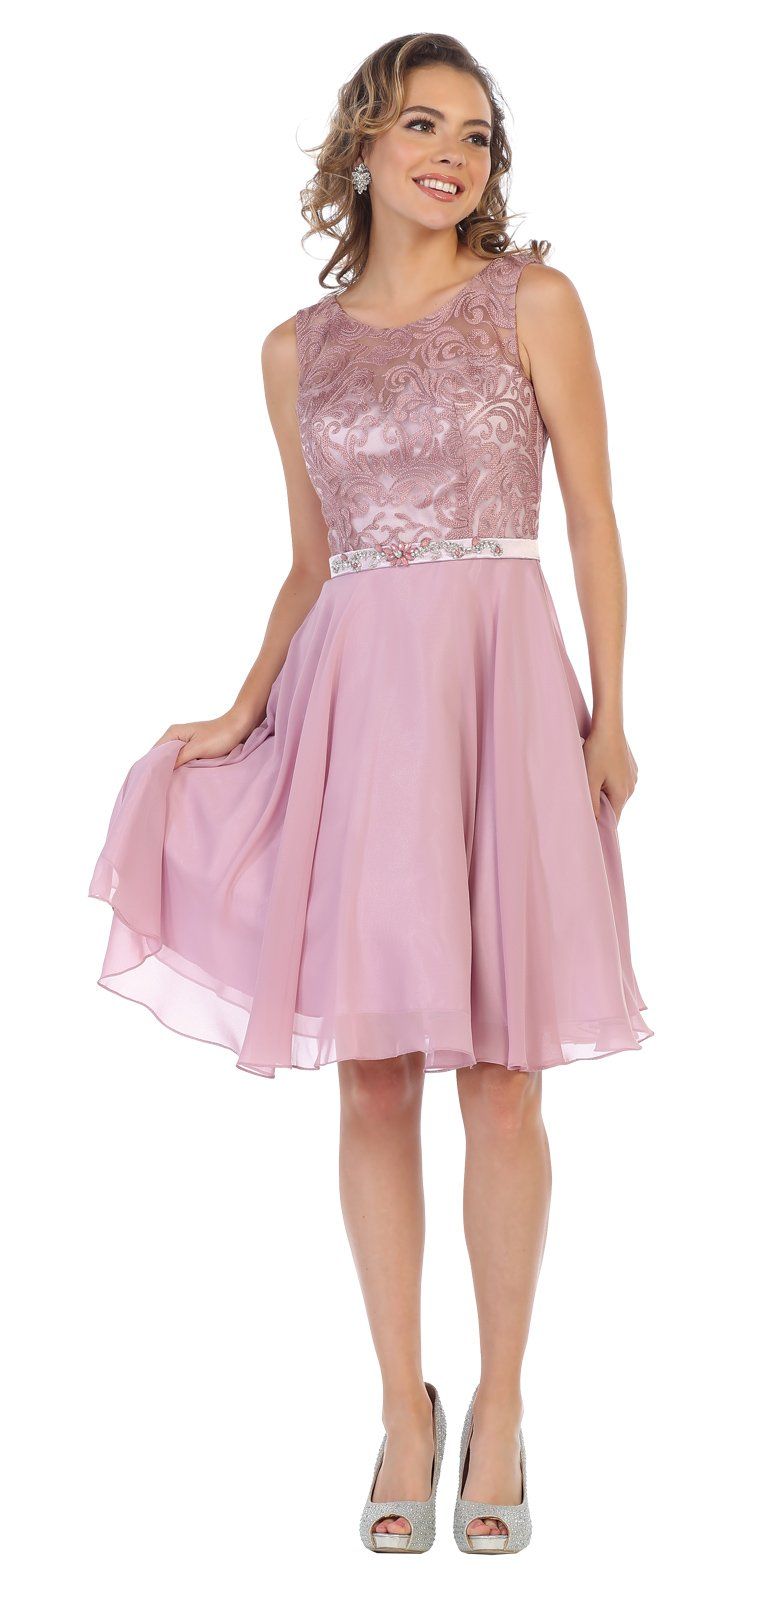 Pink Lace Applique Short Homecoming Dress